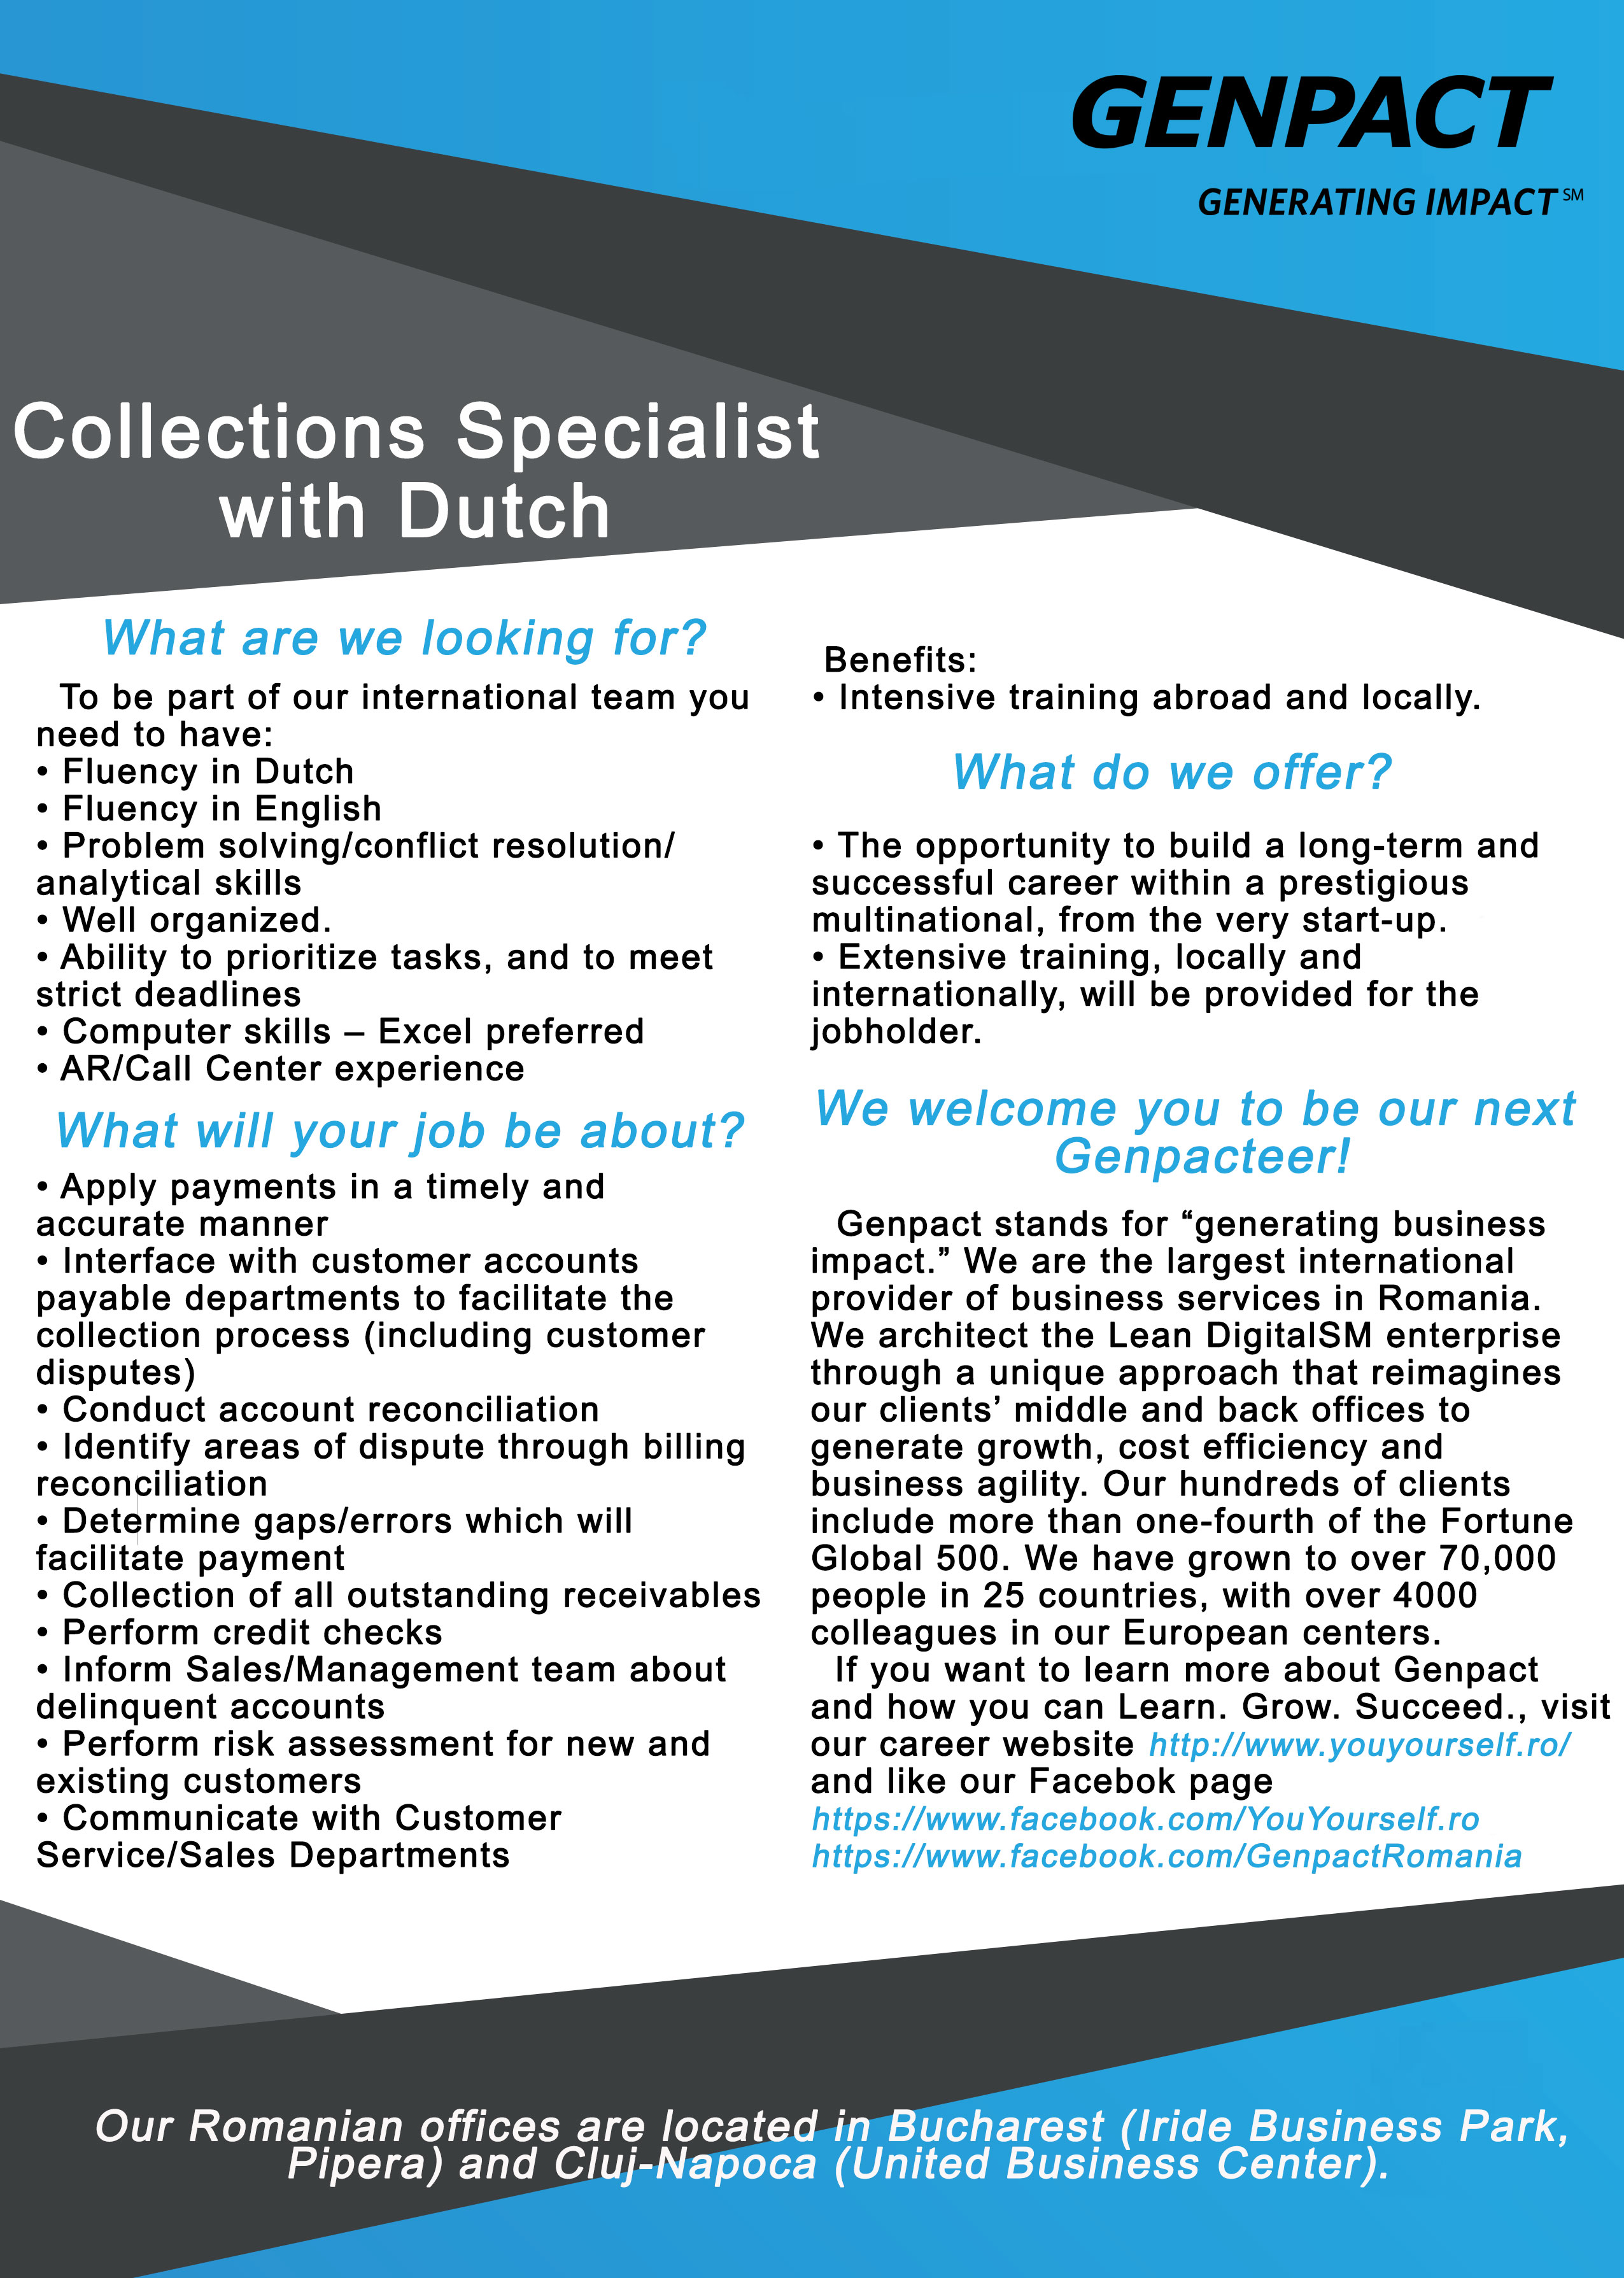 Collections Specialist with Dutch